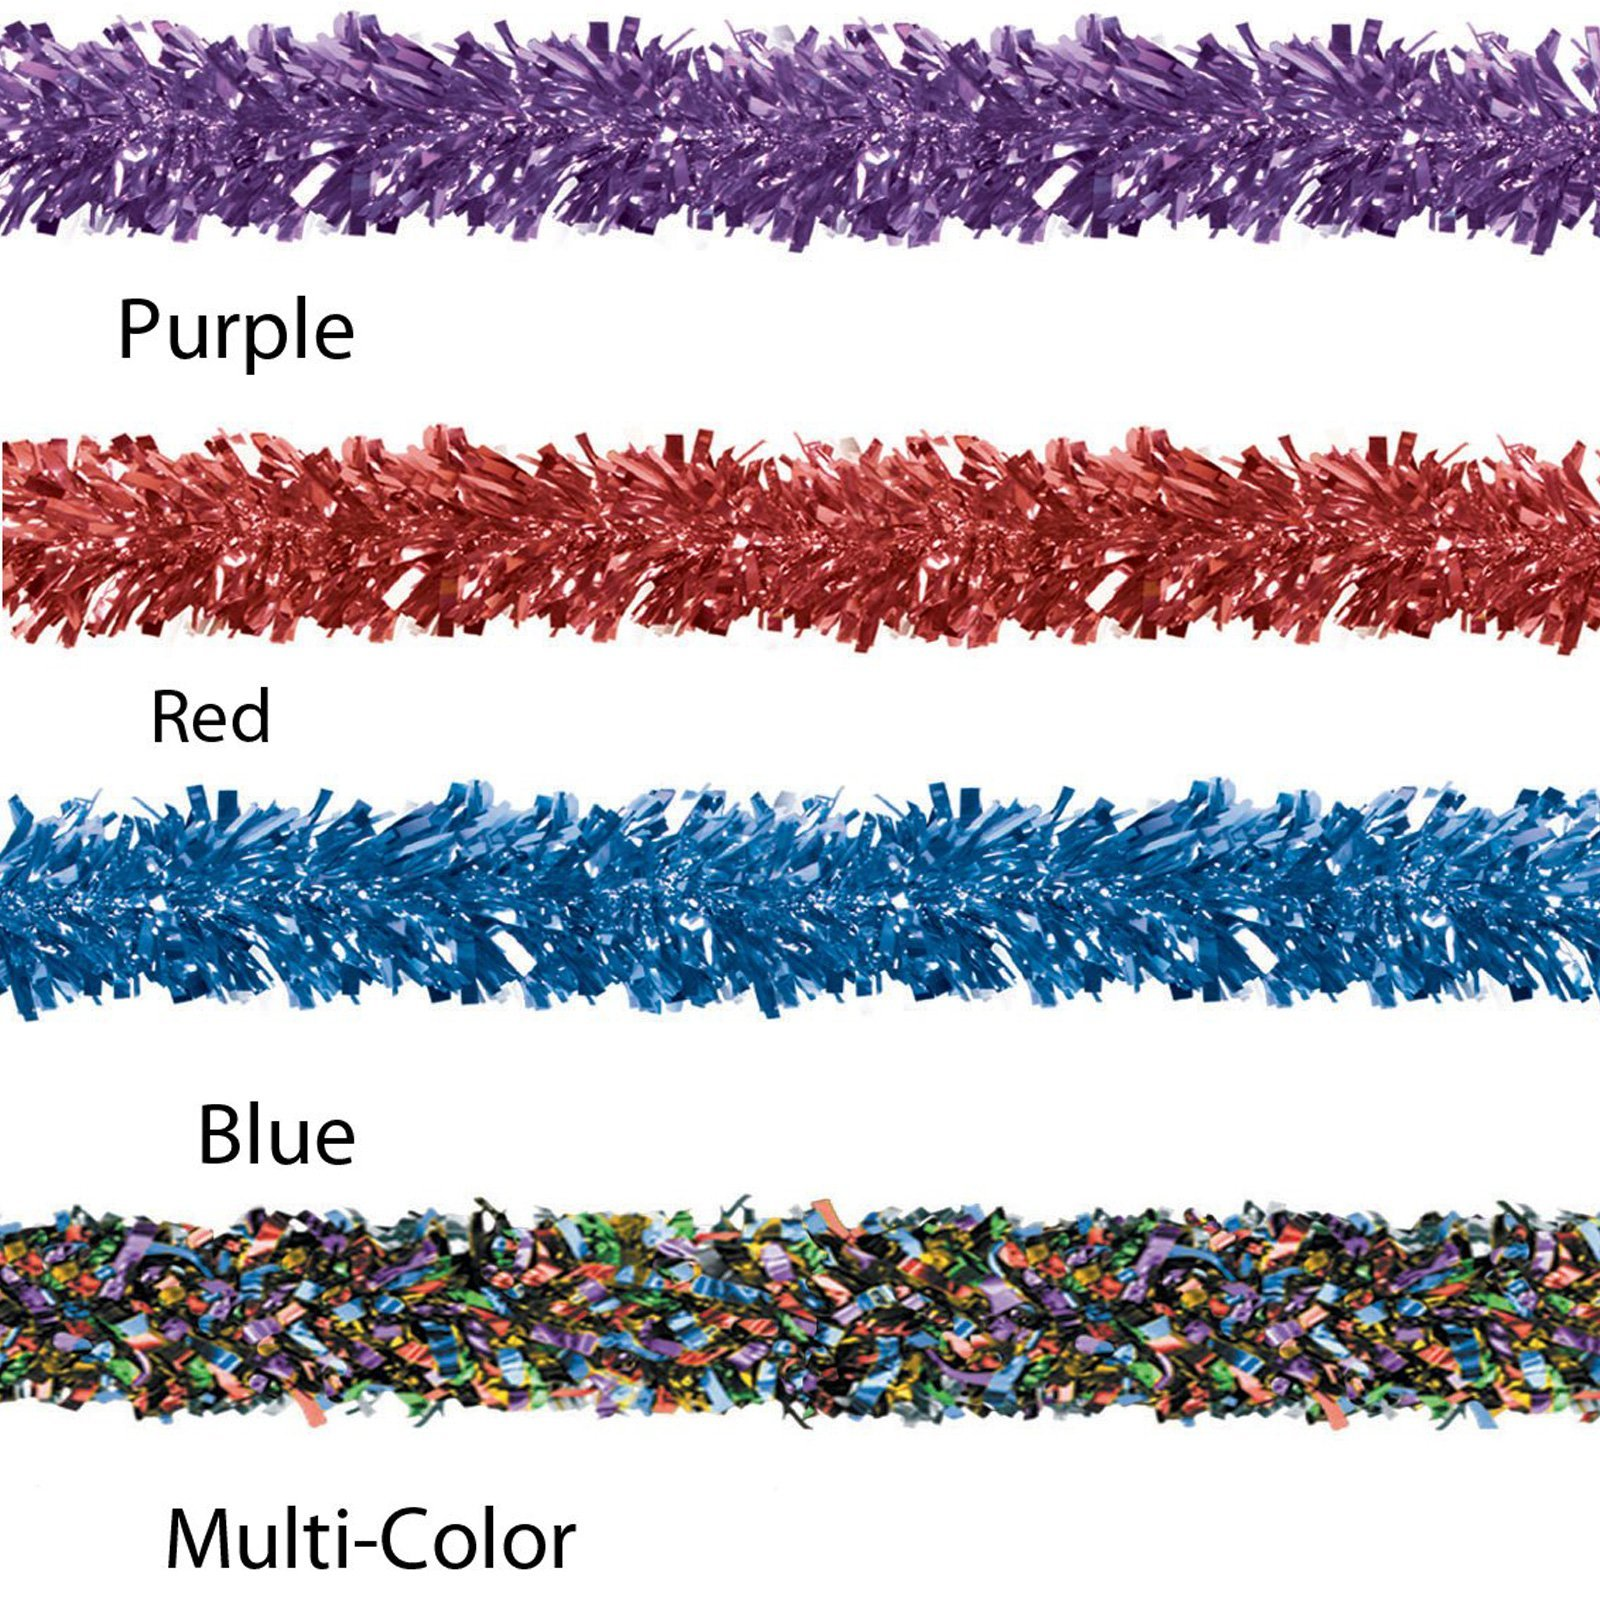 6-Ply FR Gleam 'N Fest Festooning Garland (white) Party Accessory  (1 count)